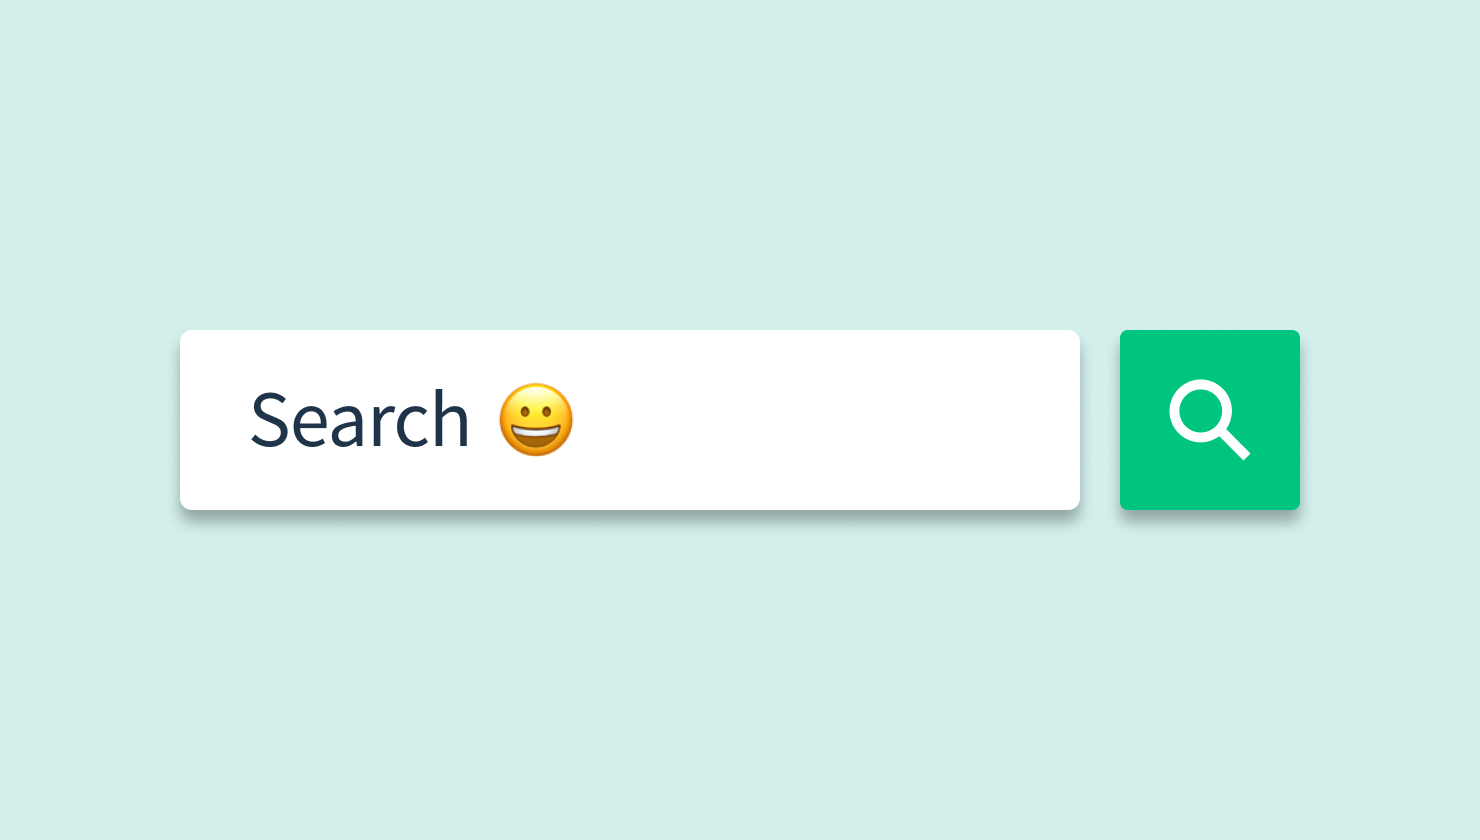 Product Update: We've Revamped our Search